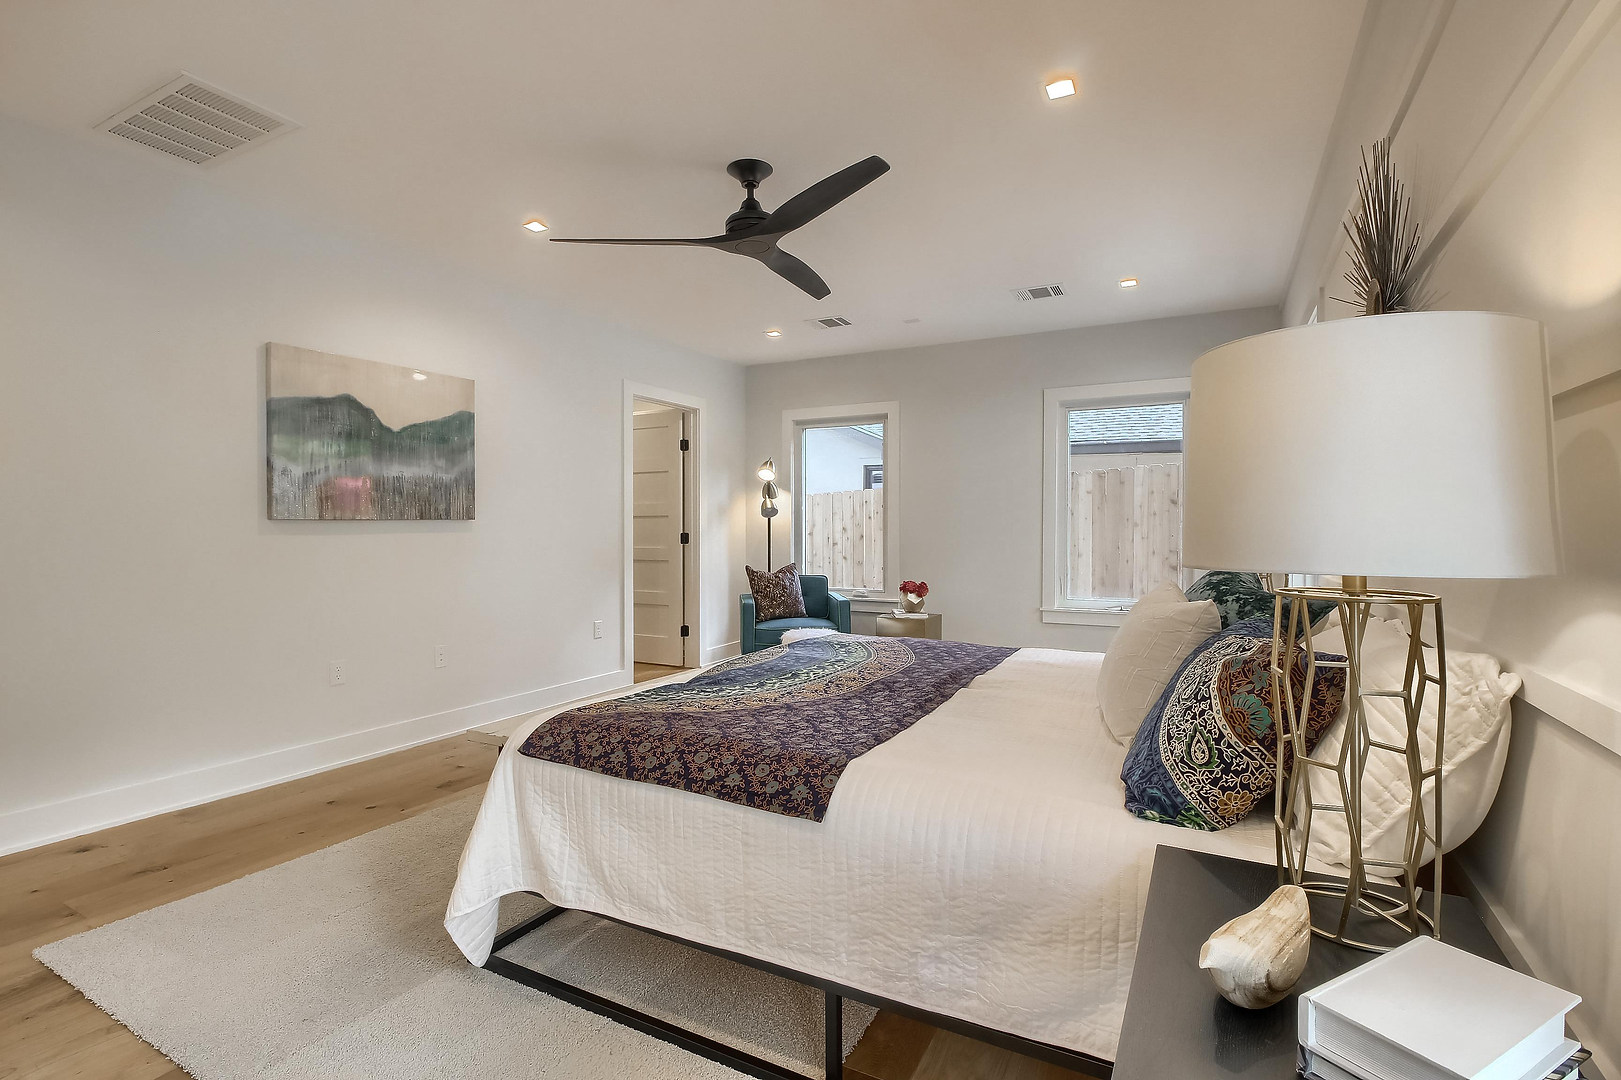 Home Renovation Master Bedroom Light Features on West 29th in Austin, Texas